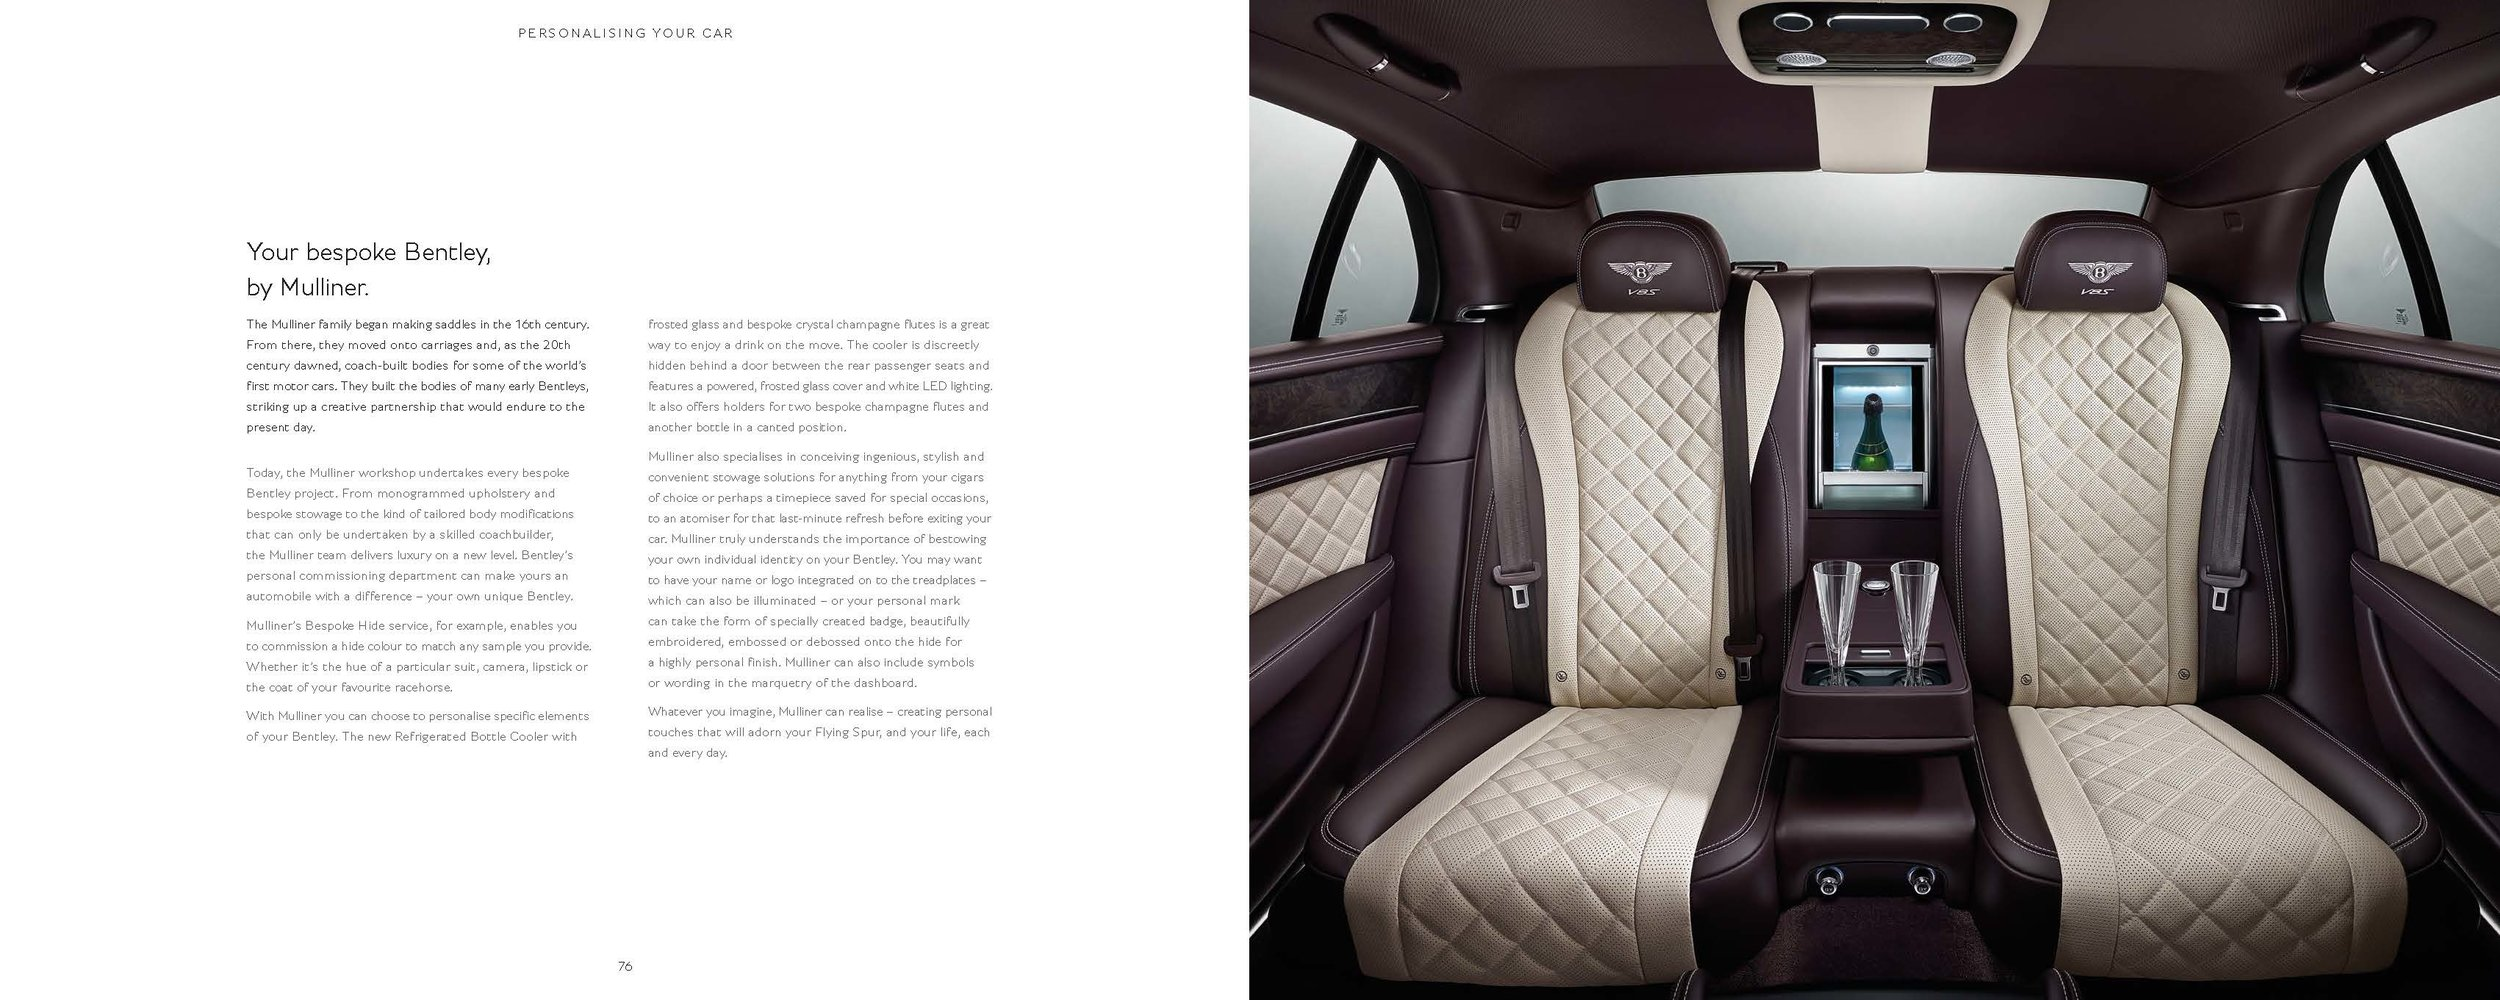 BENFS-16-012_Flying Spur Customer Book Cover & Contents CLEAN_v15_Page_39.jpg